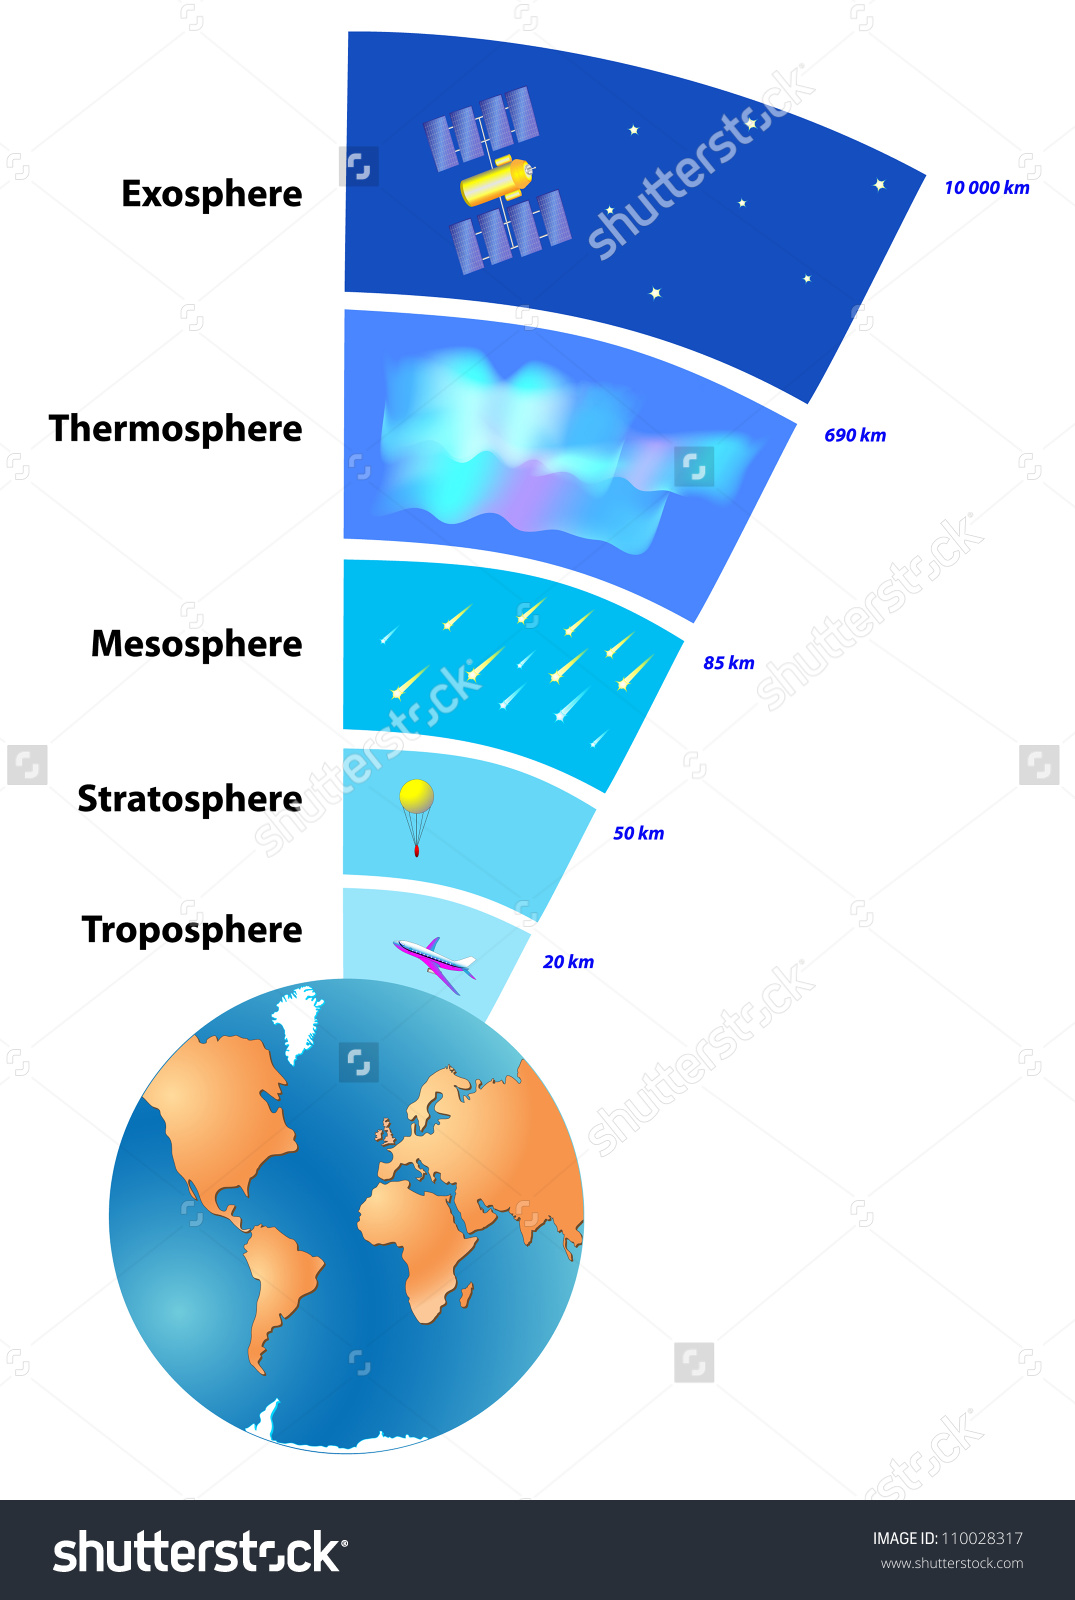 source: www.shutterstock.com fig: Atmosphere